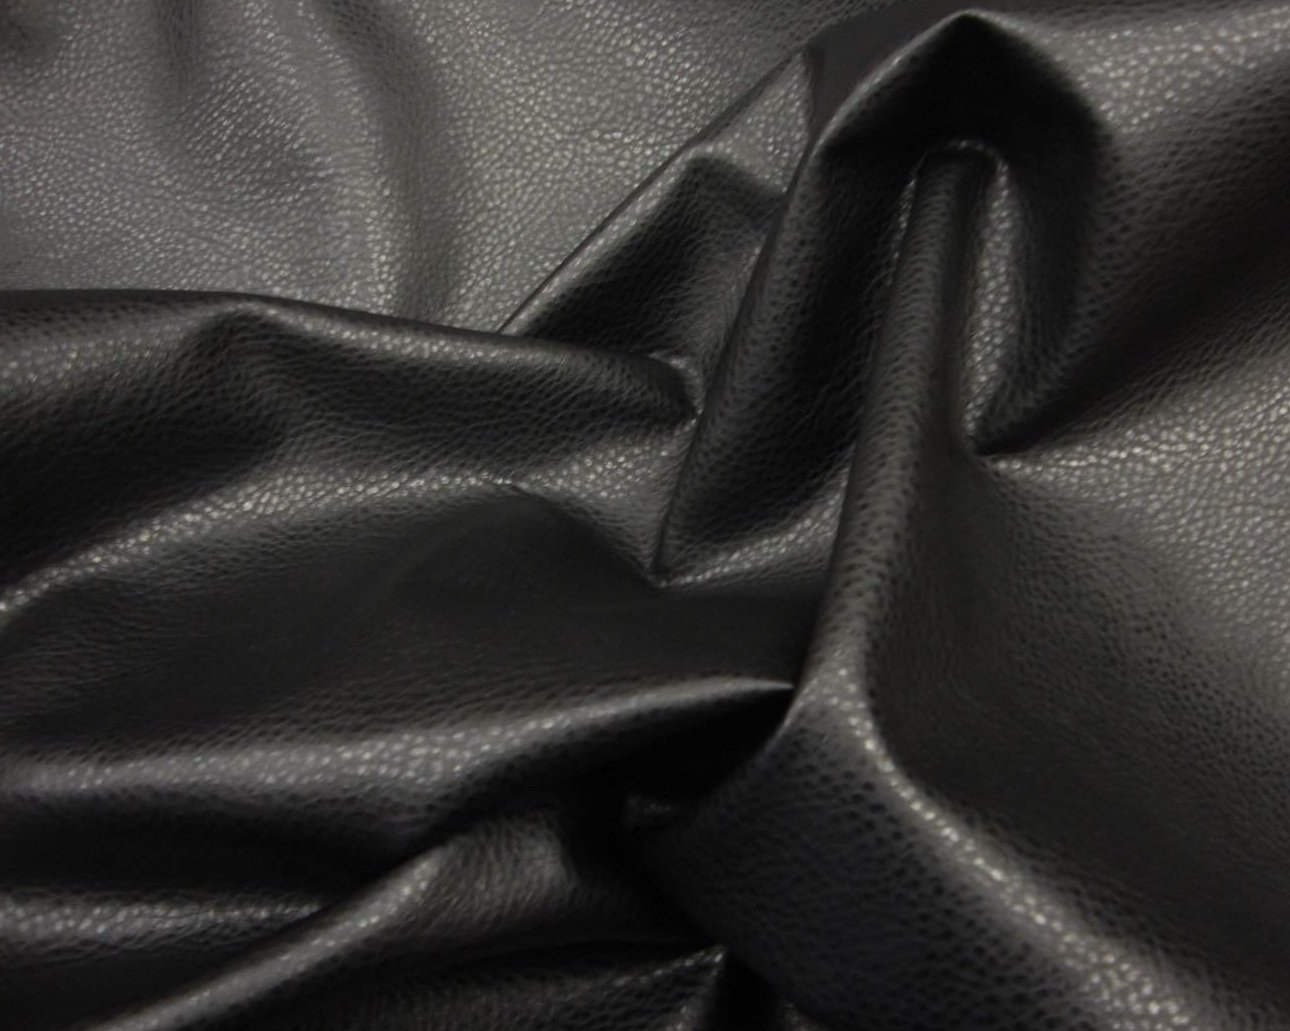 luvfabrics Vinyl Black ford 14x30 Sofa Loveseat Chaise Theater Seat, RV Cover, Chair Caps Headrest Pad, Recliner Head Cover, Furniture Protector